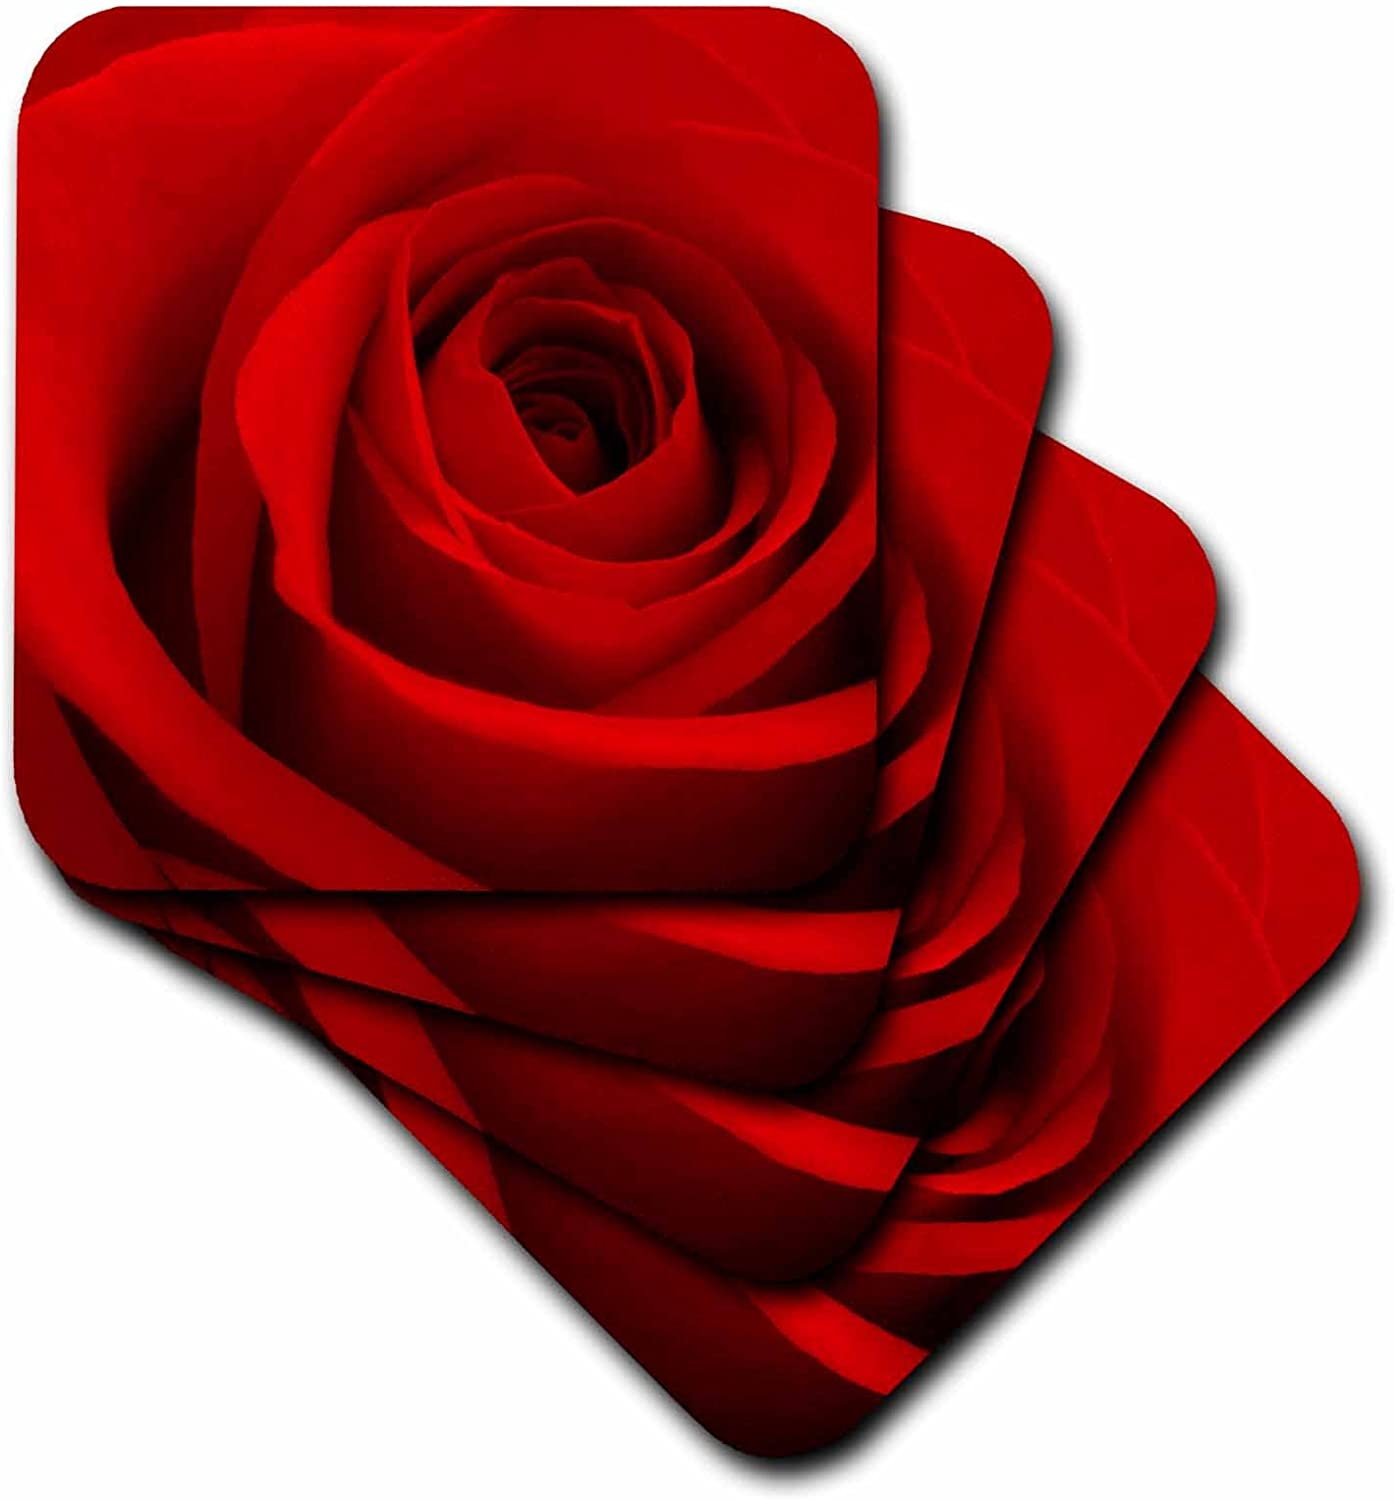 Amazon.com: 3dRose cst_155091_1 Red Rose Flower Love Relationship ...